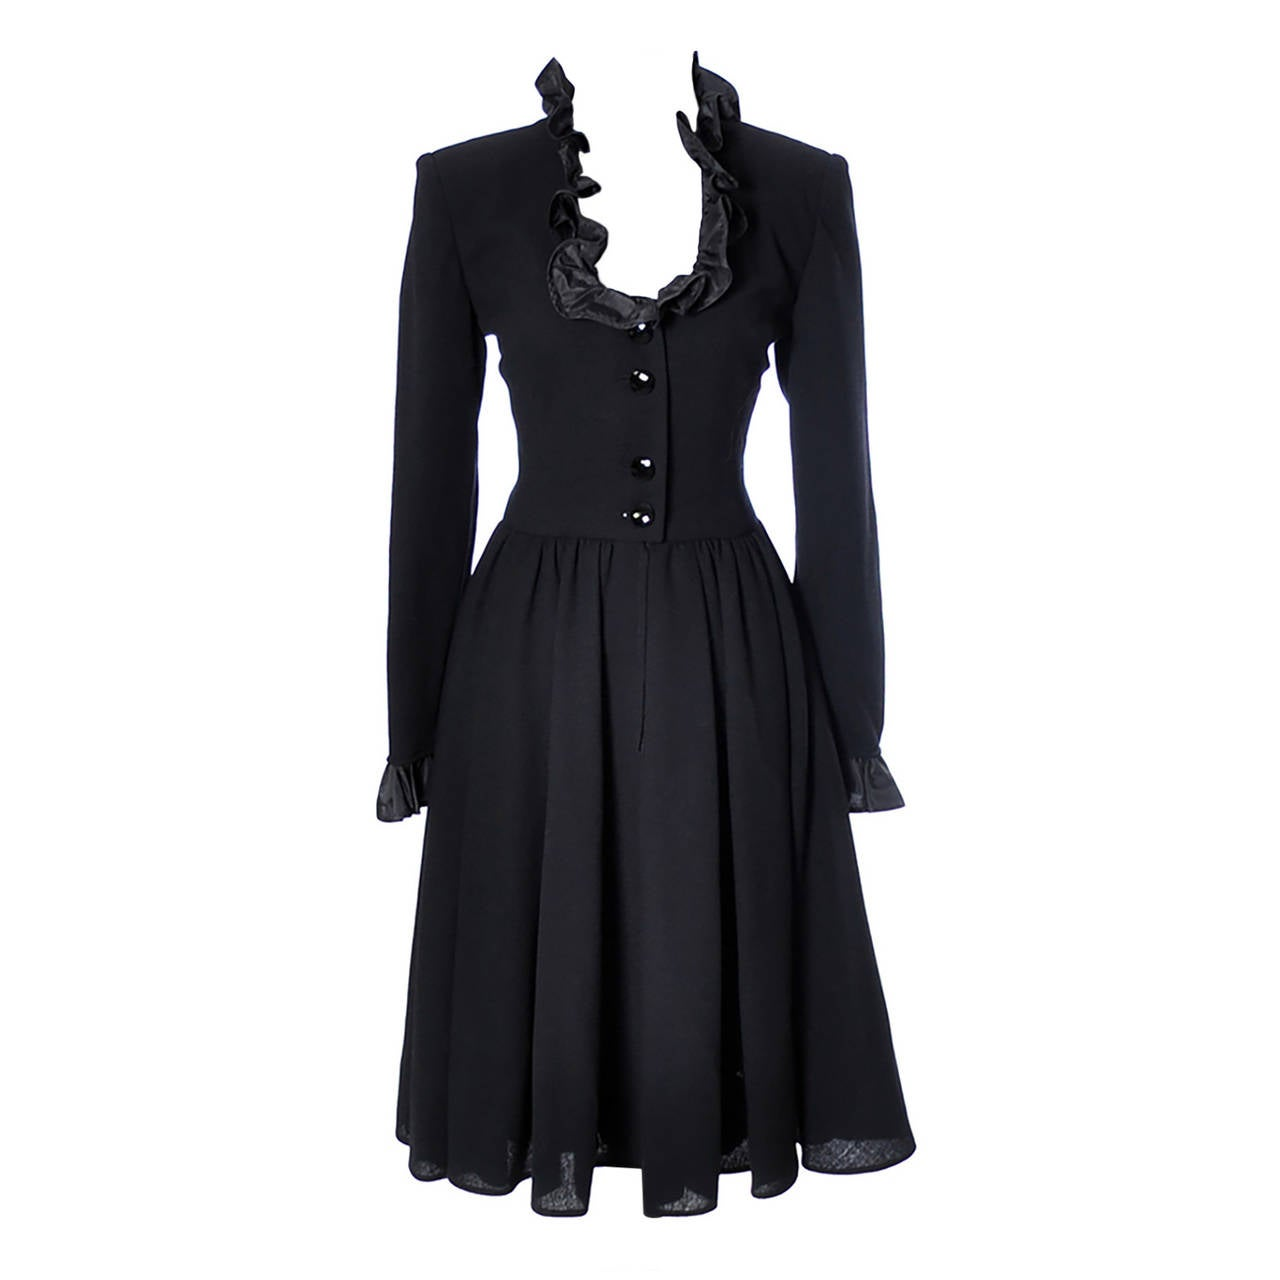 Vintage Valentino Black Wool Crepe Dress w/ Ruffled Taffeta Trim Size 6 For Sale